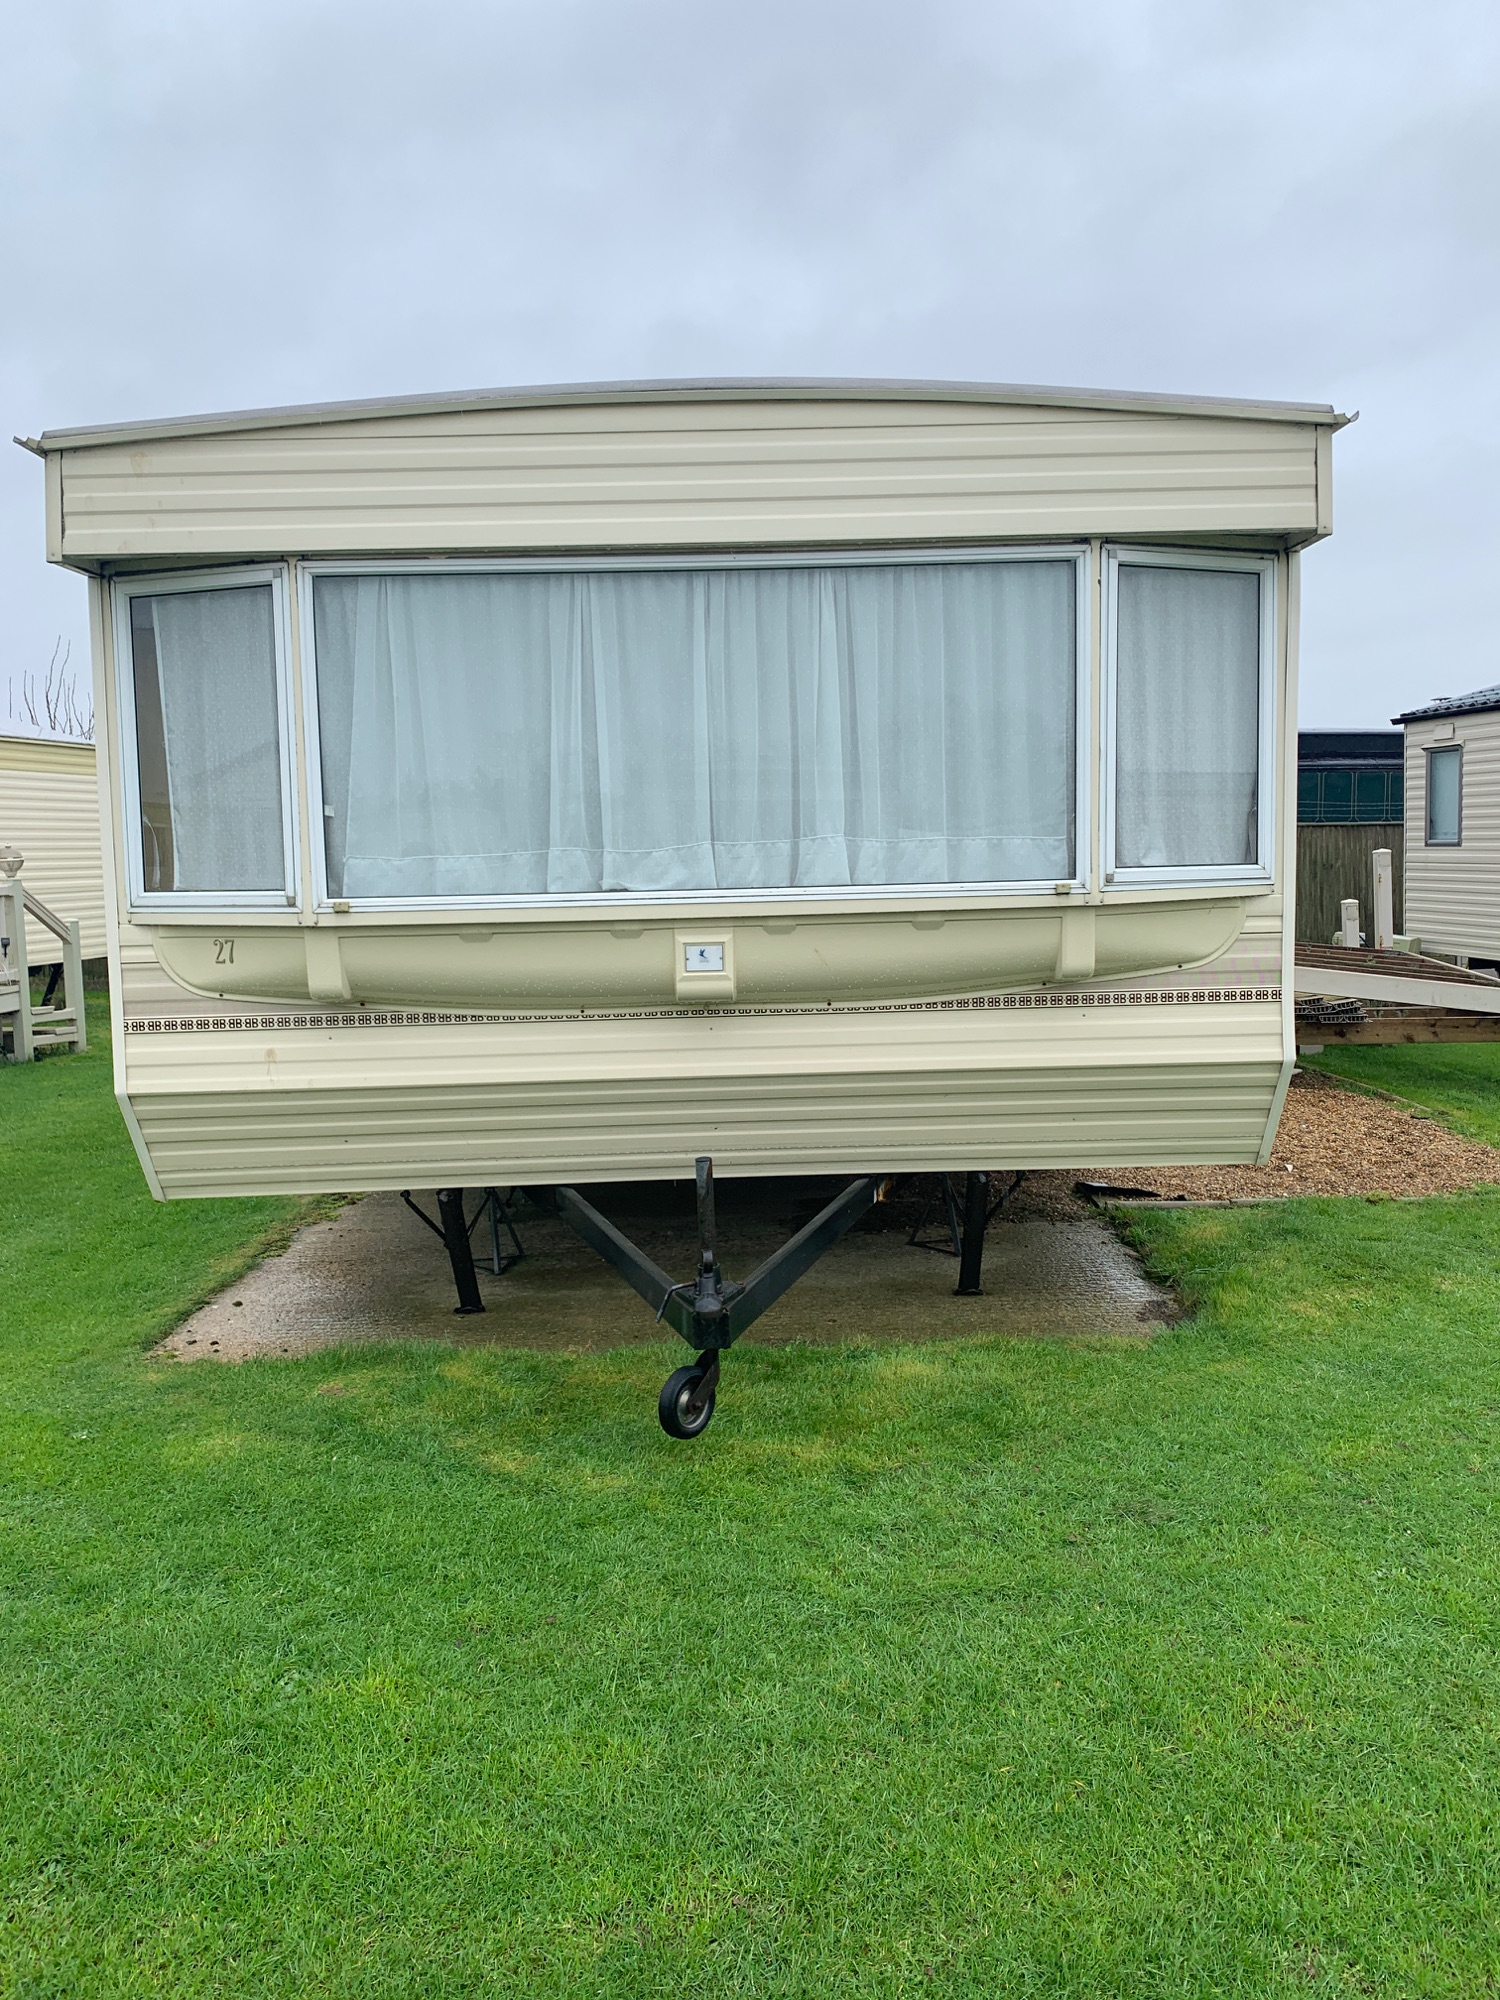 Bk Contessa 35 x 12 -2 bed